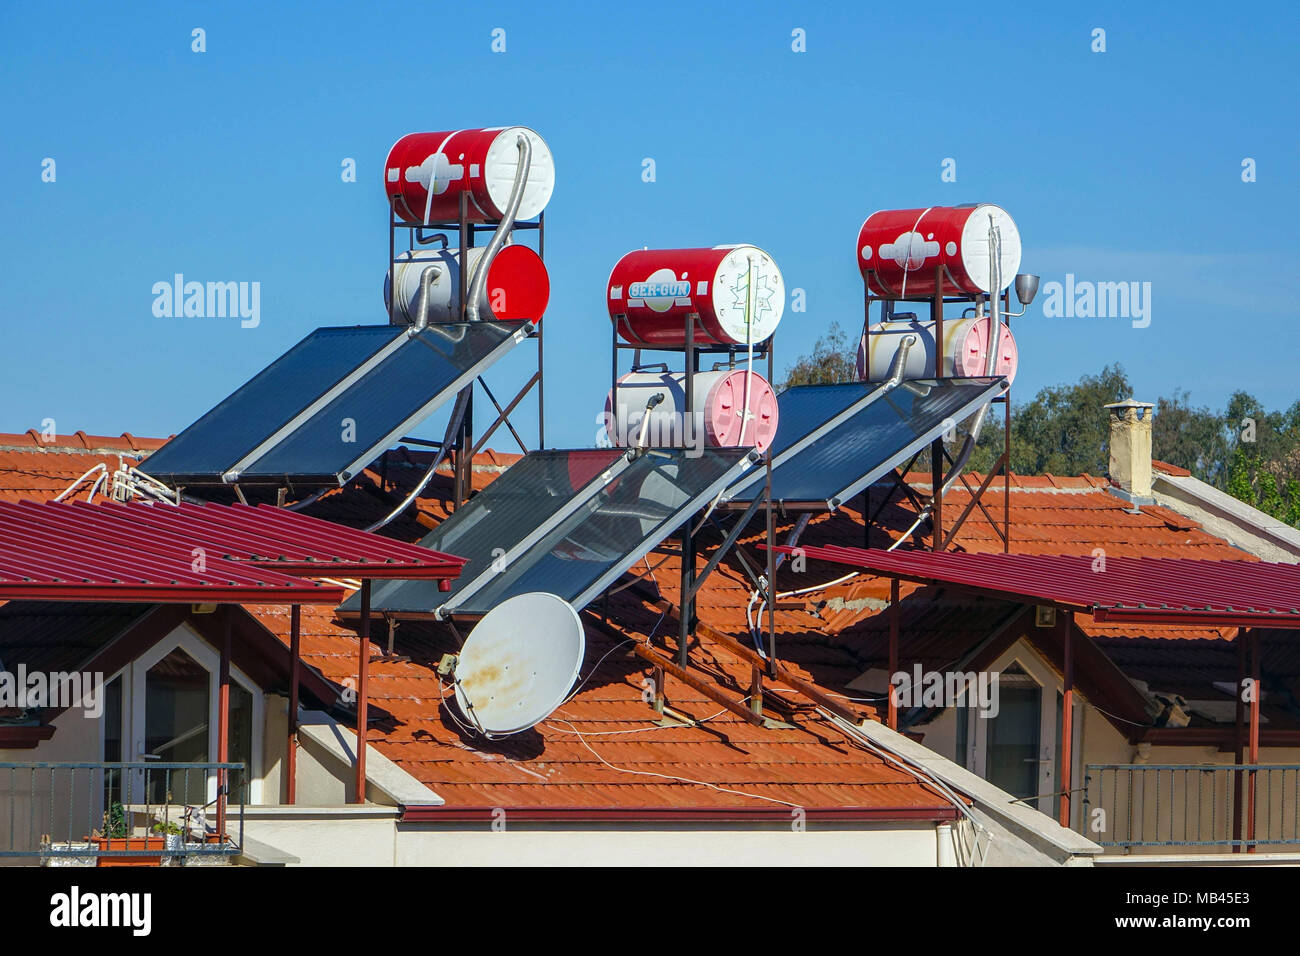 Solar panels and red water tanks on rooftop, Fethiye, Turkey - Stock Image